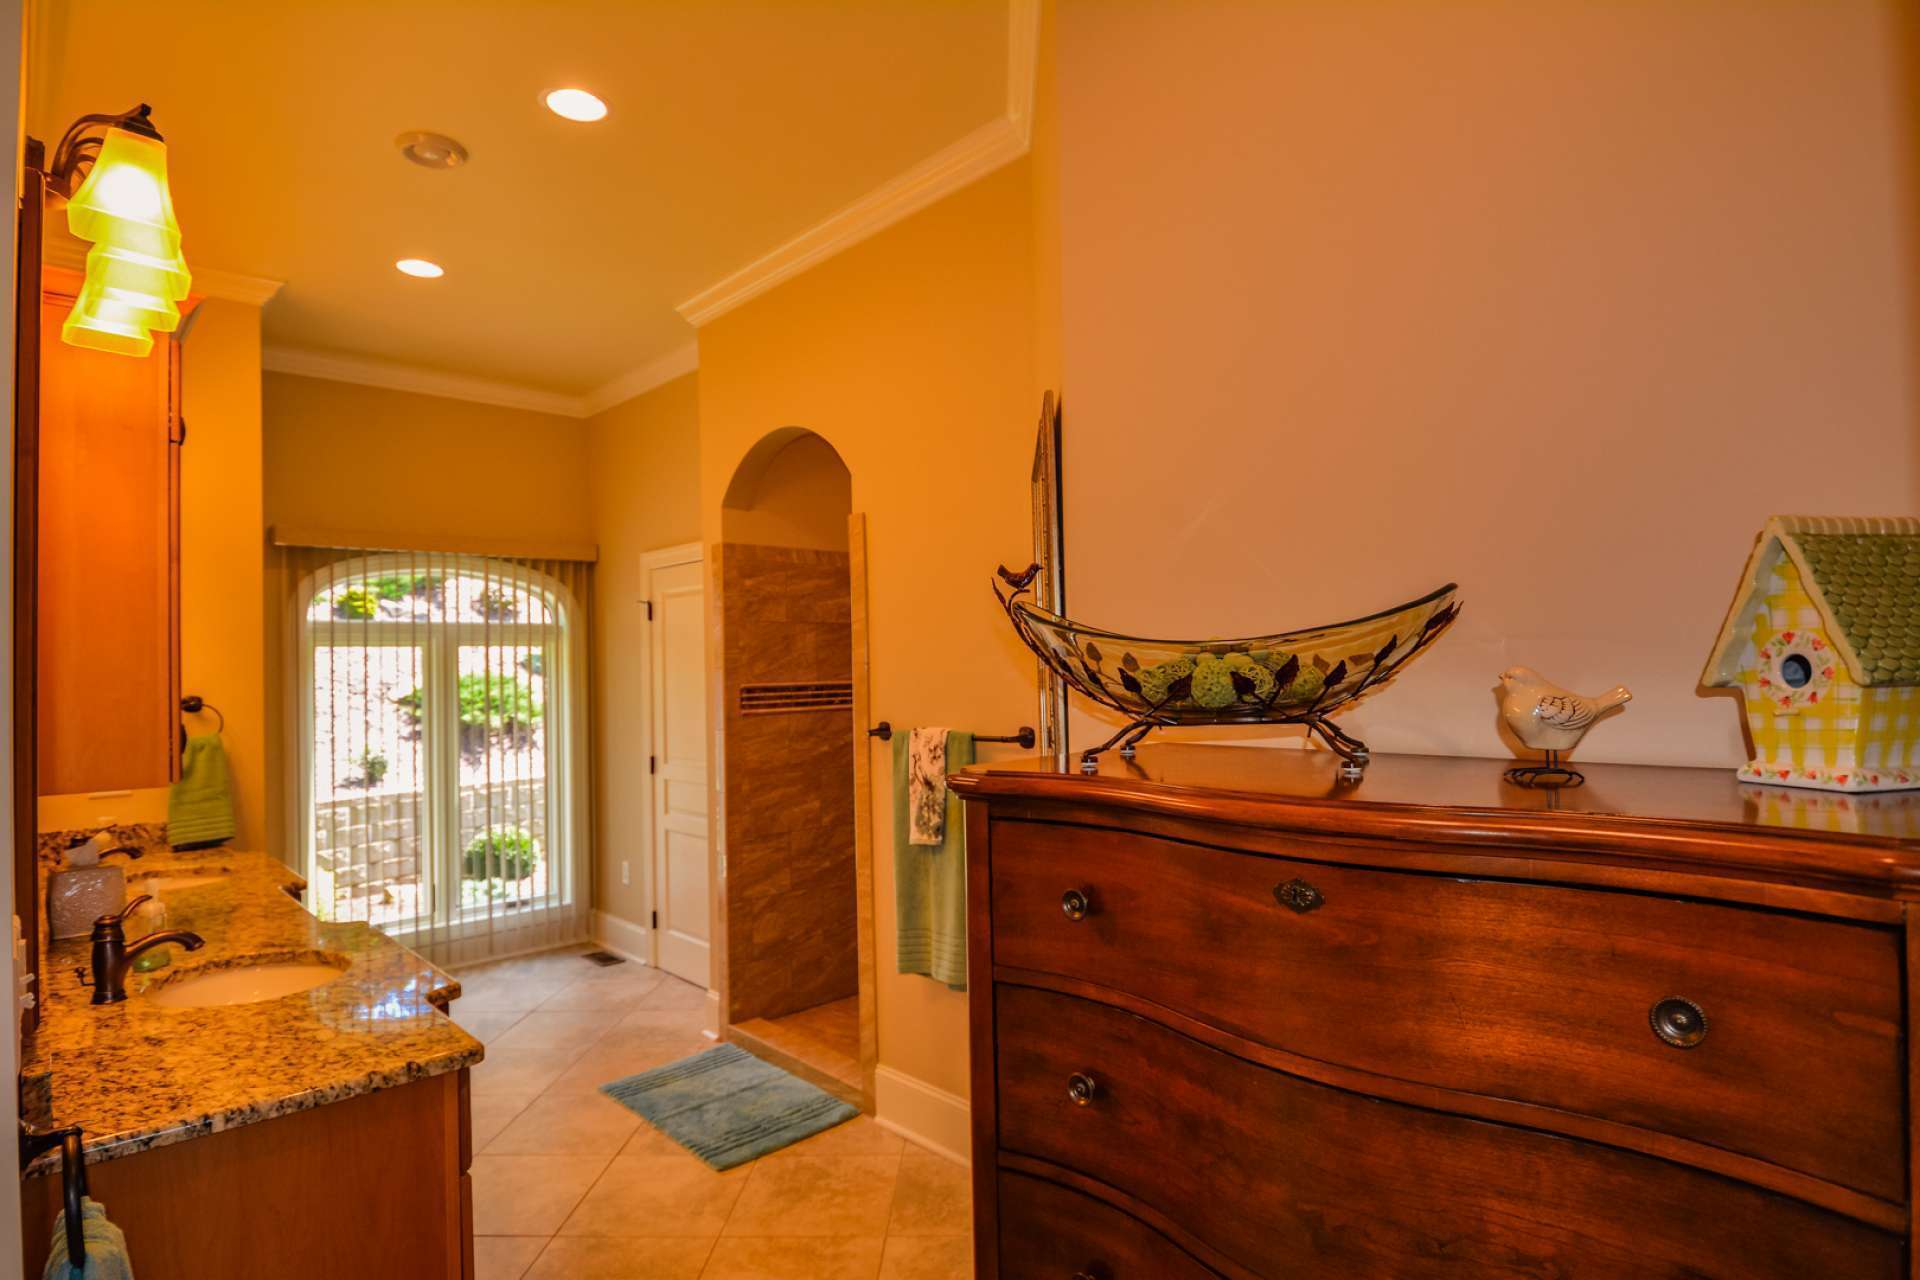 The gorgeous luxury master bath has a granite double vanity and a big window for natural light. An enormous walk-in shower welcomes you through an arched entryway. The shower includes separate handheld showerheads with diverters. Even the home's elongated, high-profile toilets are upgraded with soft close seats. The cabinetry is custom knotty alder.